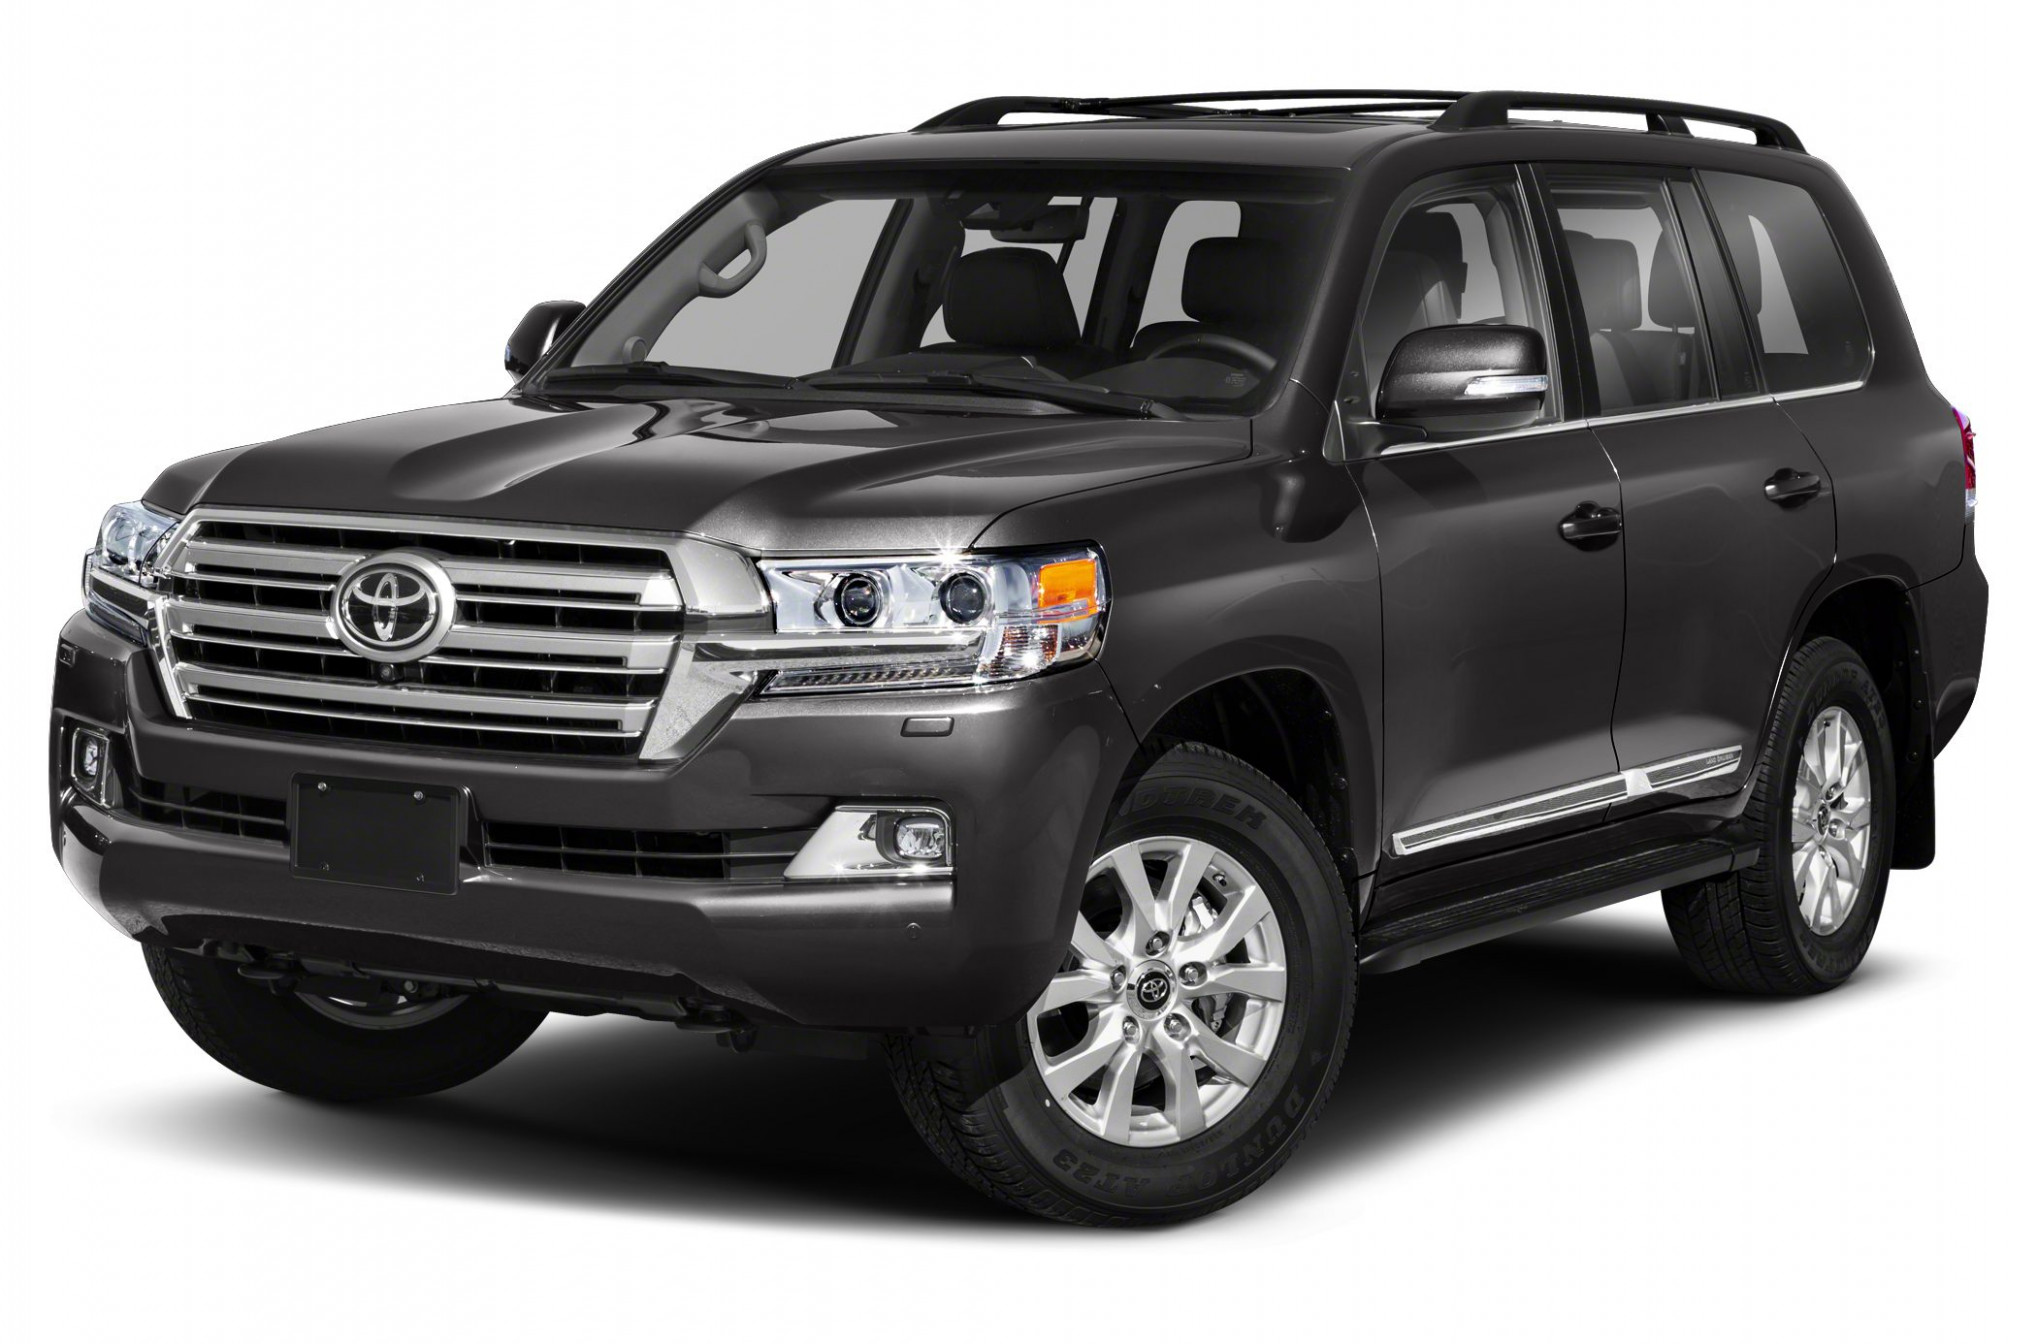 6 Toyota Land Cruiser Reviews, Specs, Photos - 2020 toyota land cruiser msrp